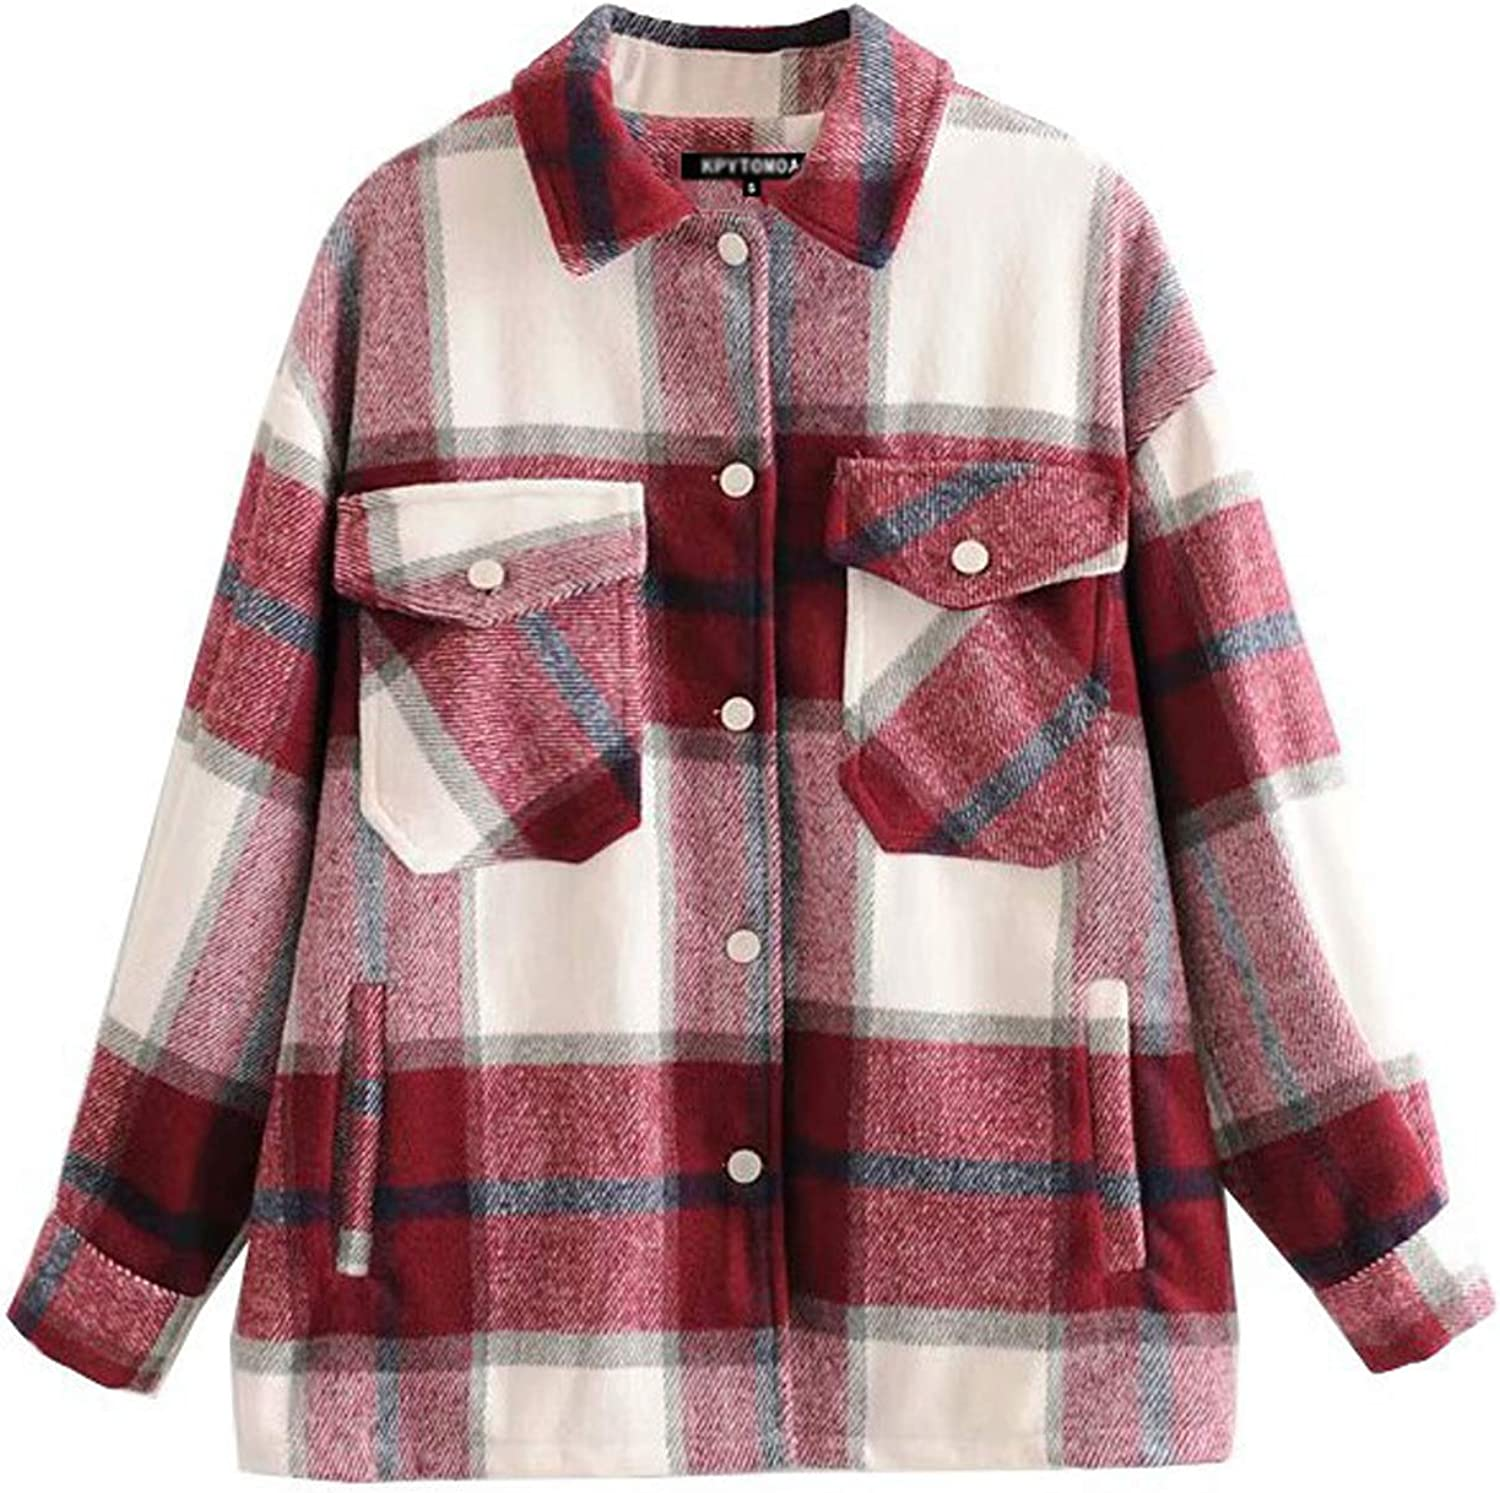 Firehood Limited price Women's Retro Oversized Plaid Loose Limited price Jacket Shacket Butt